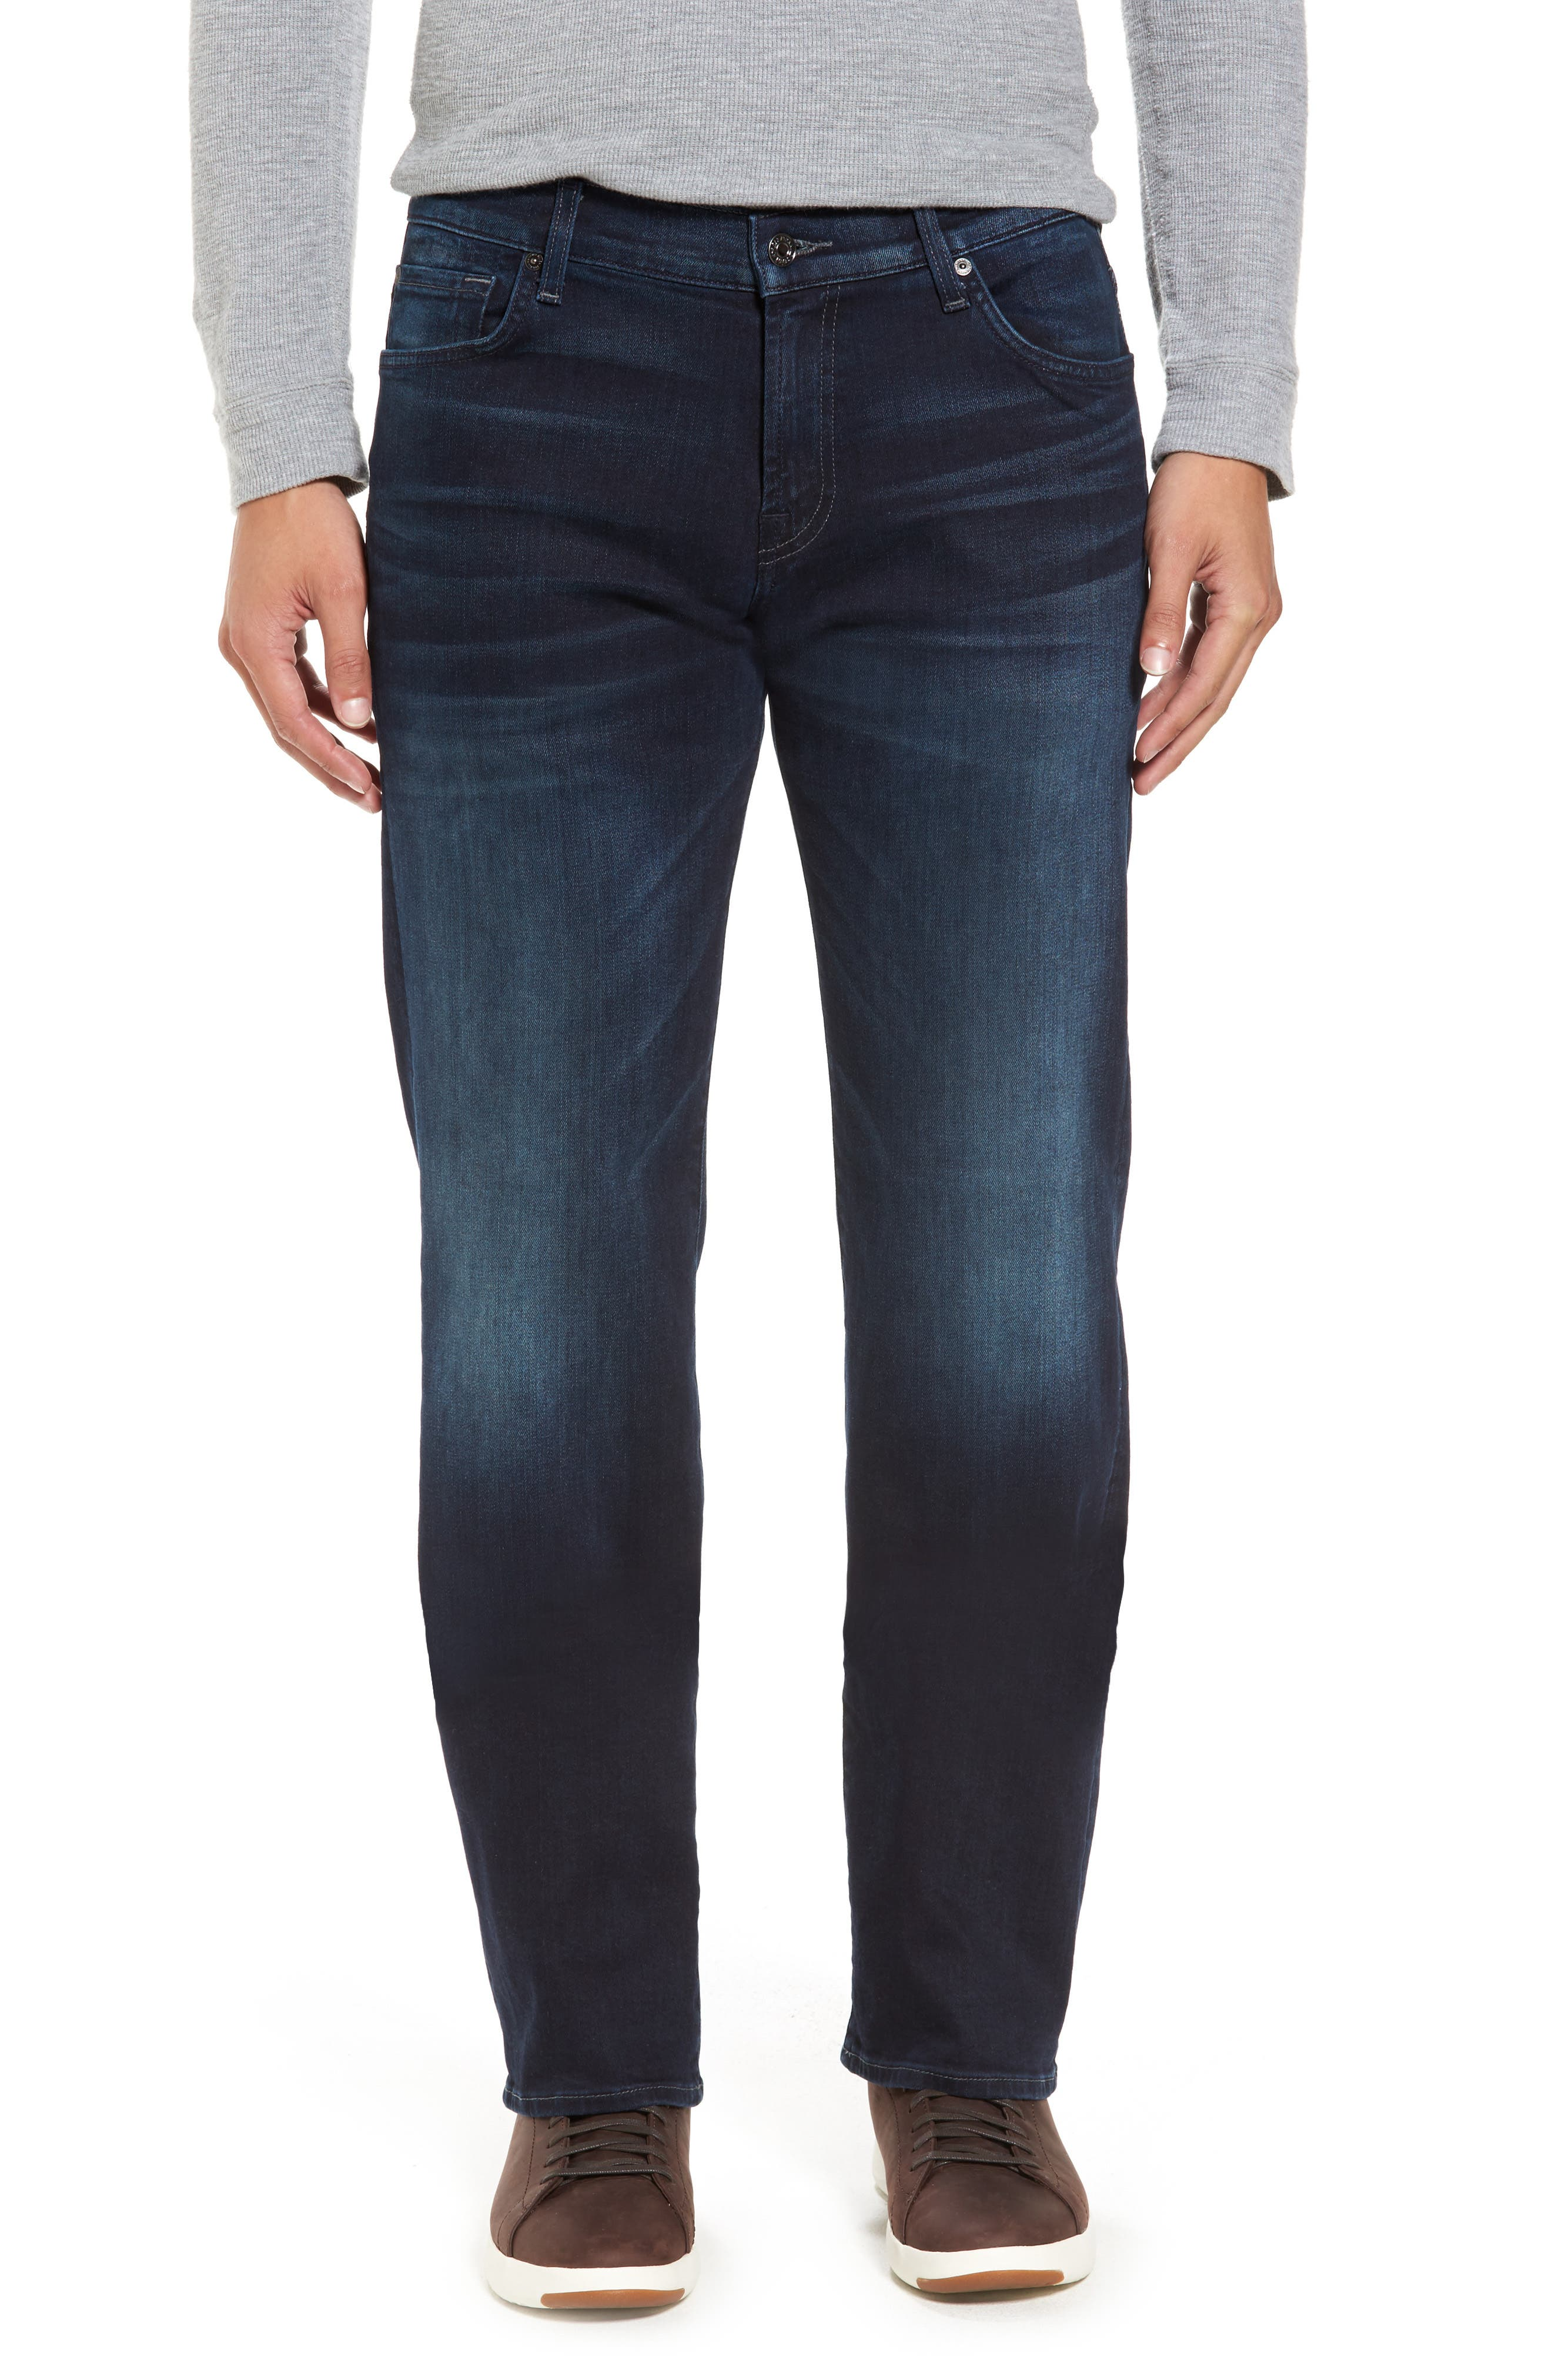 Austyn Relaxed Fit Jeans,                         Main,                         color, Parallax